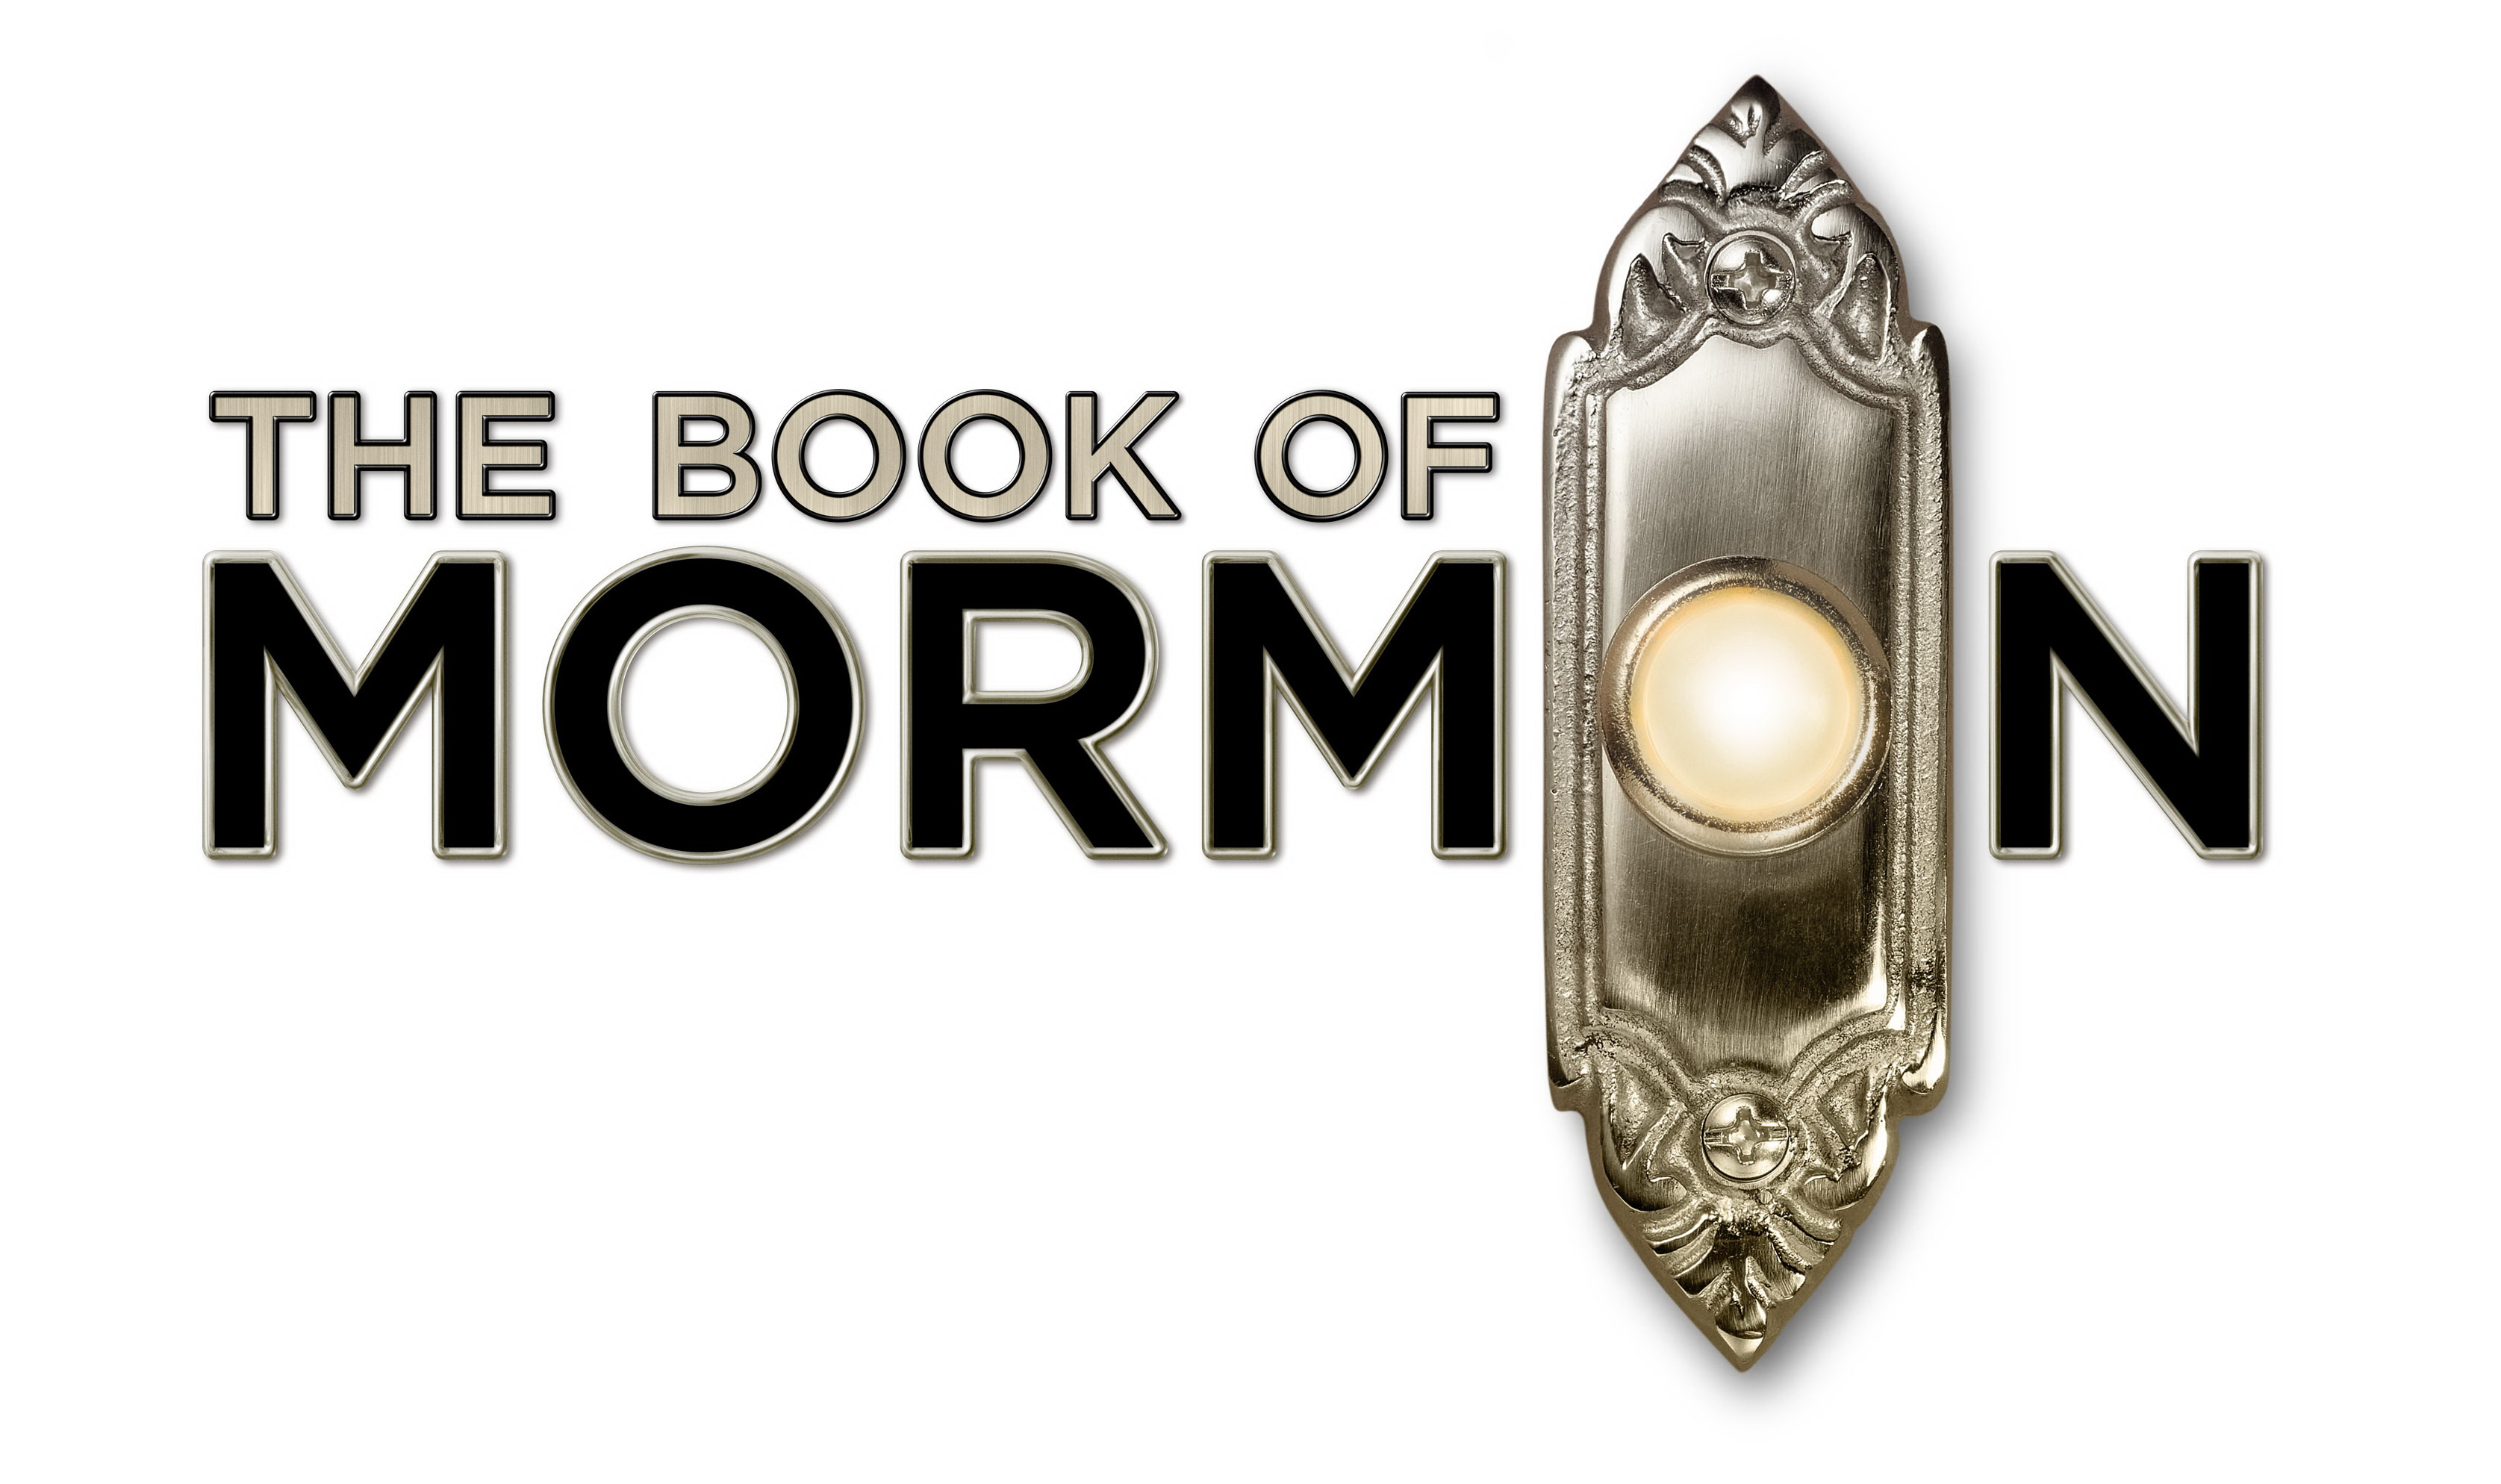 thebook_of_mormon_melbourne_accomodation